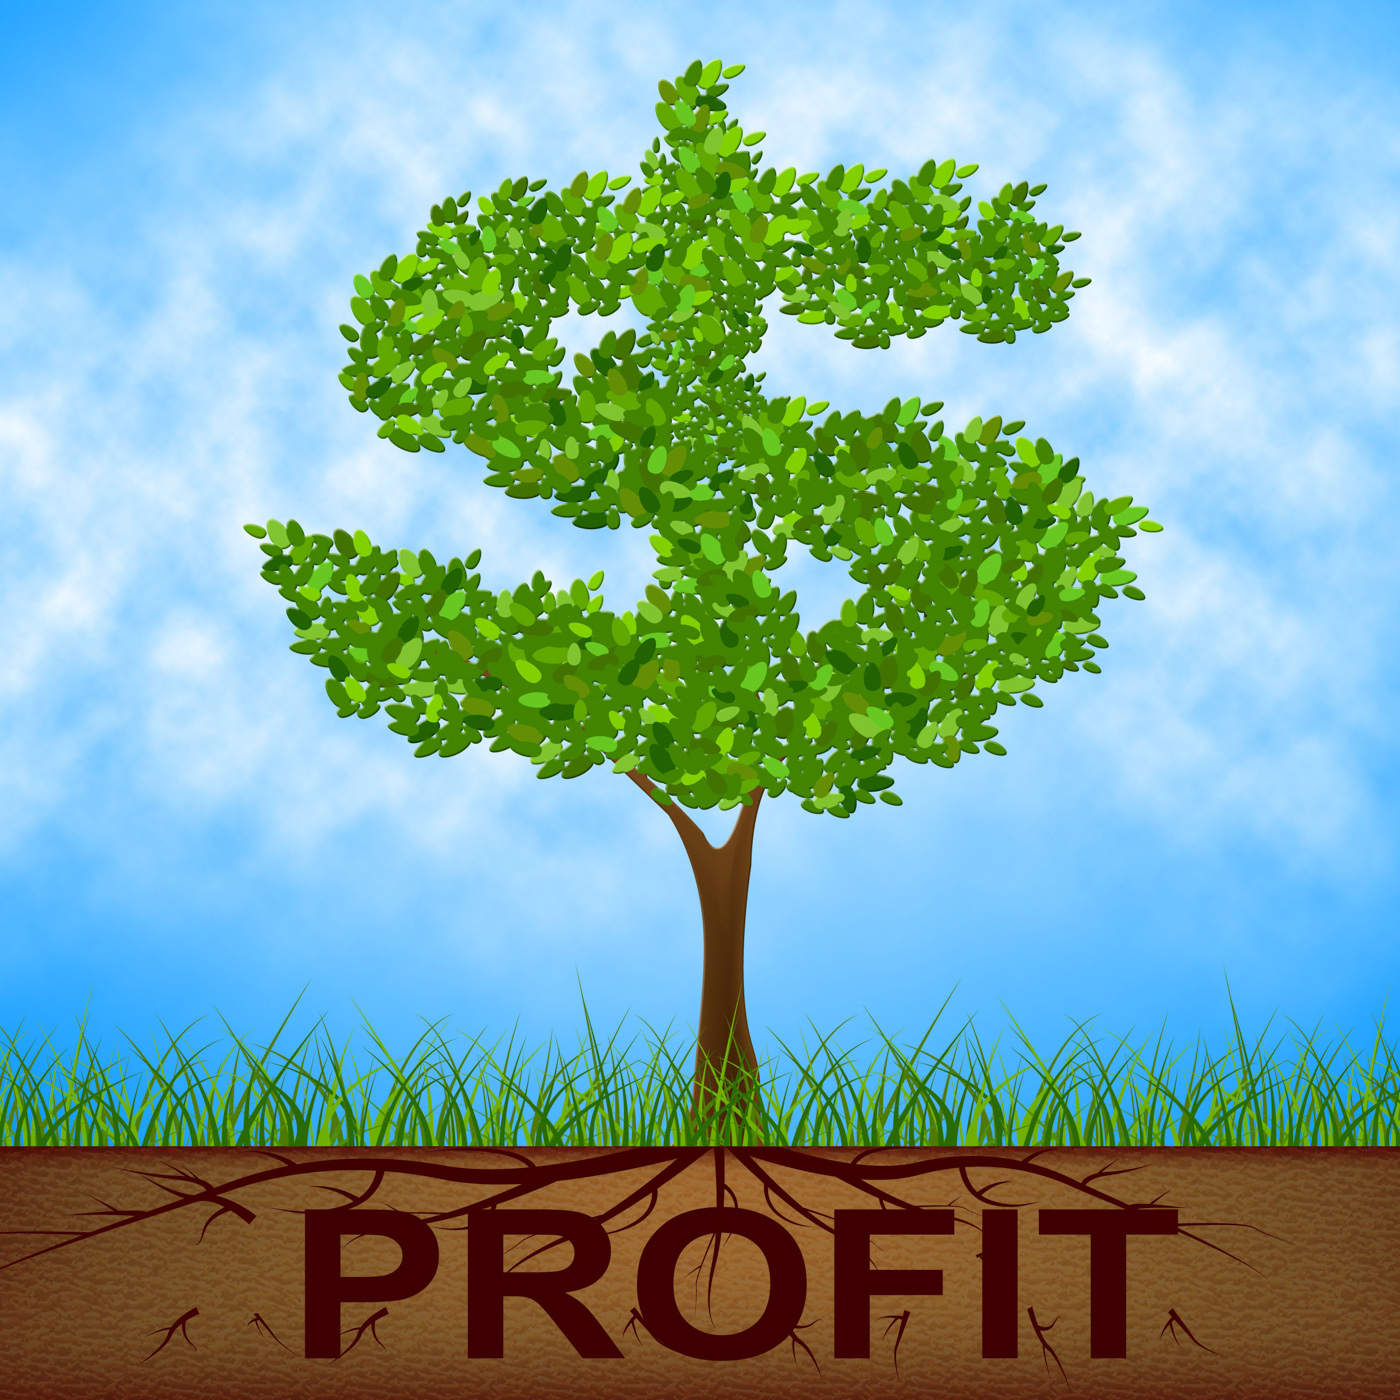 Profit tree shows united states and banking photo